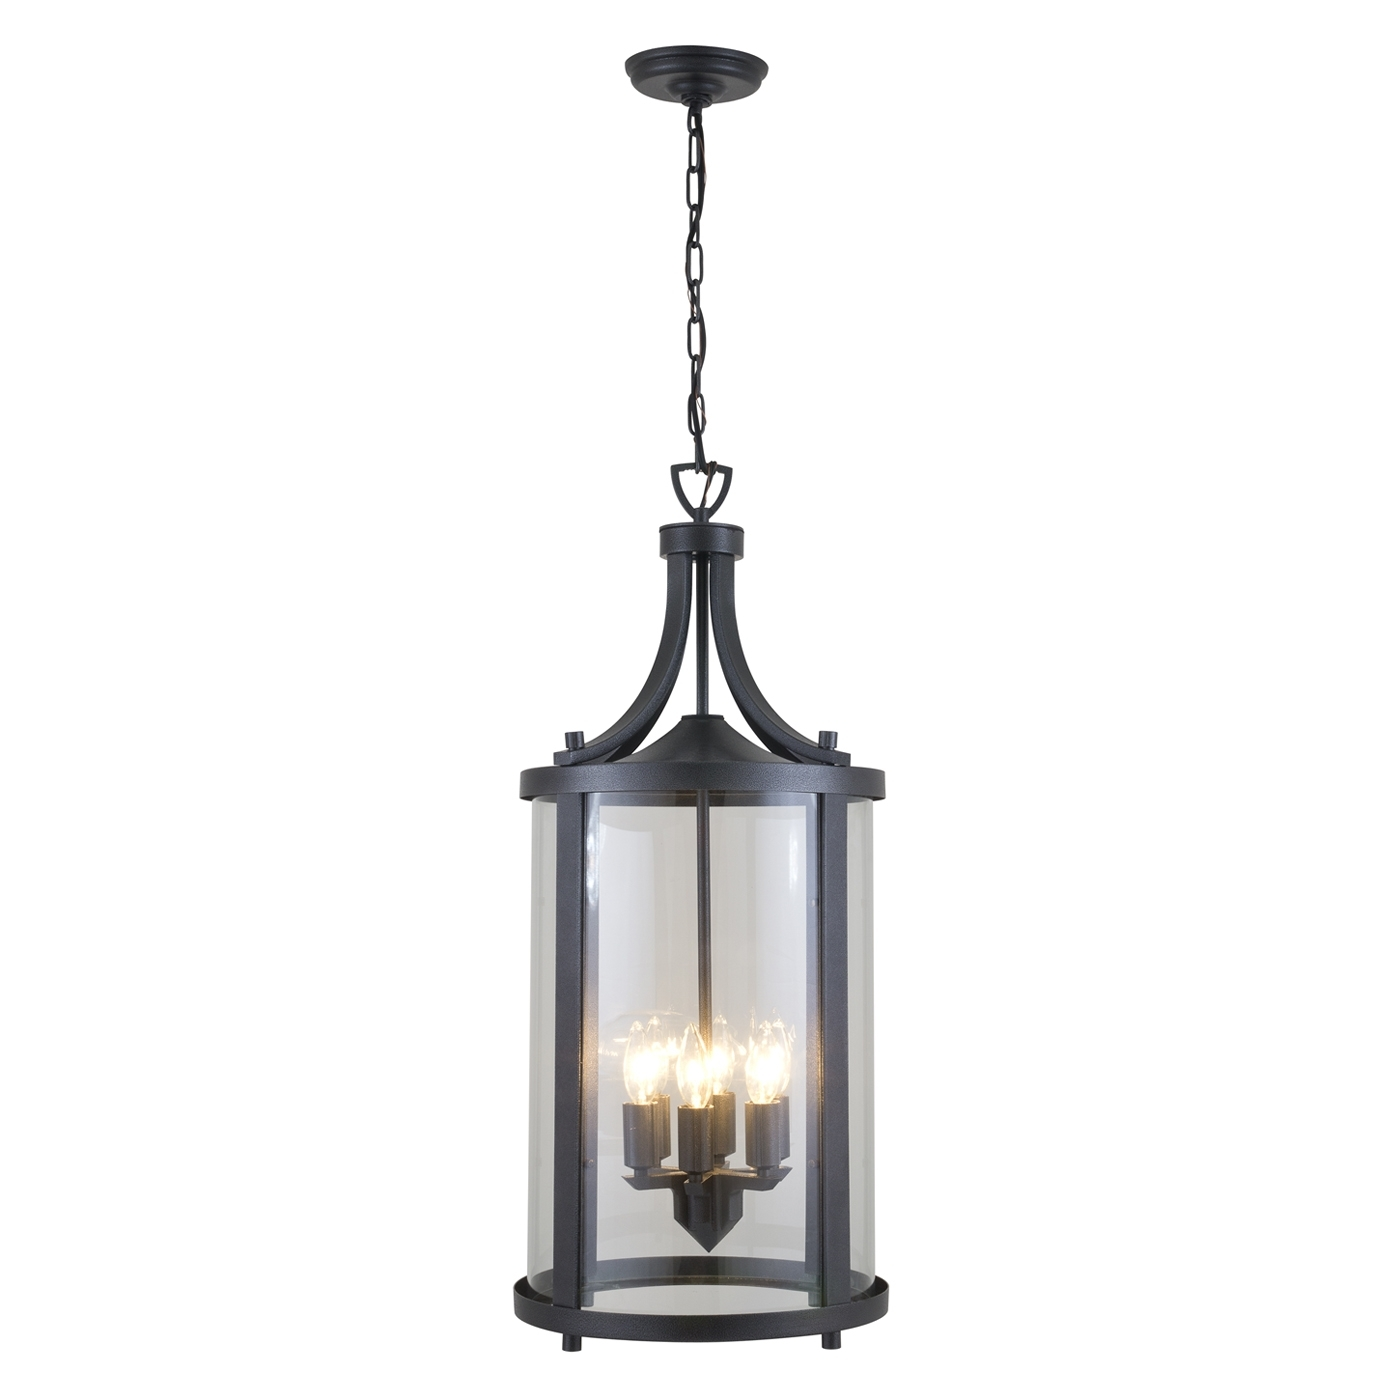 Dvi Niagara Outdoor Large Pendant | Lowe's Canada In Outdoor Hanging Lanterns At Lowes (#2 of 15)